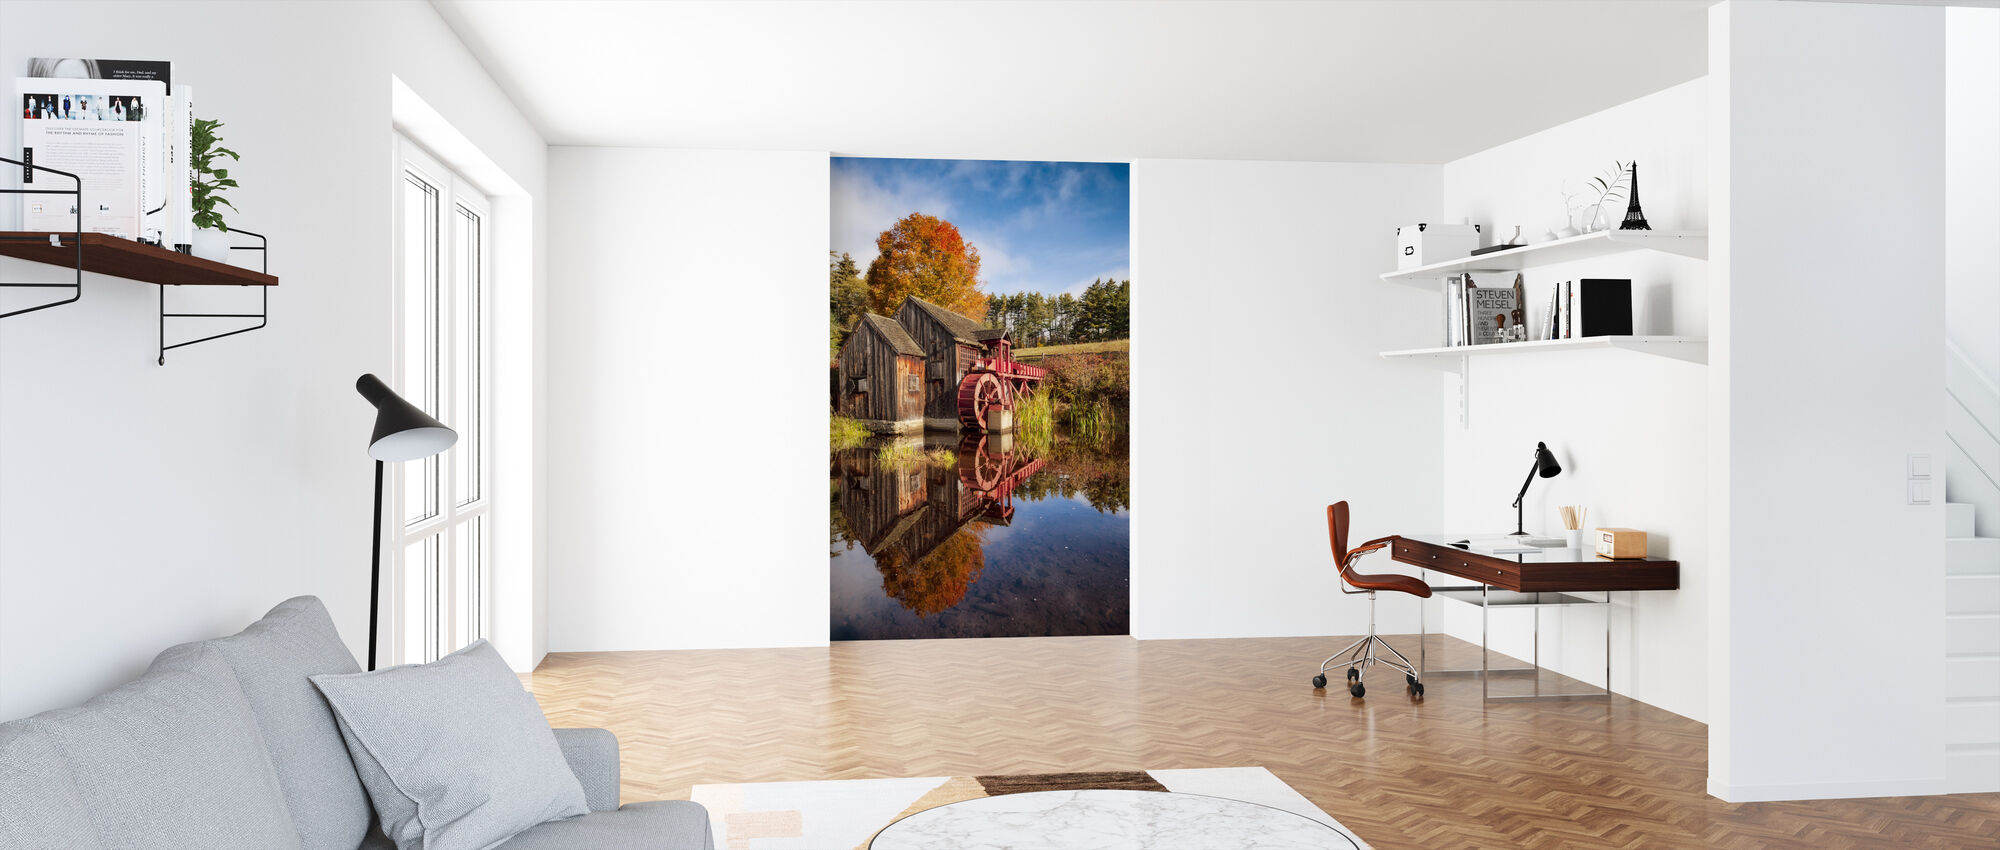 The Old Grist Mill - Wallpaper - Office